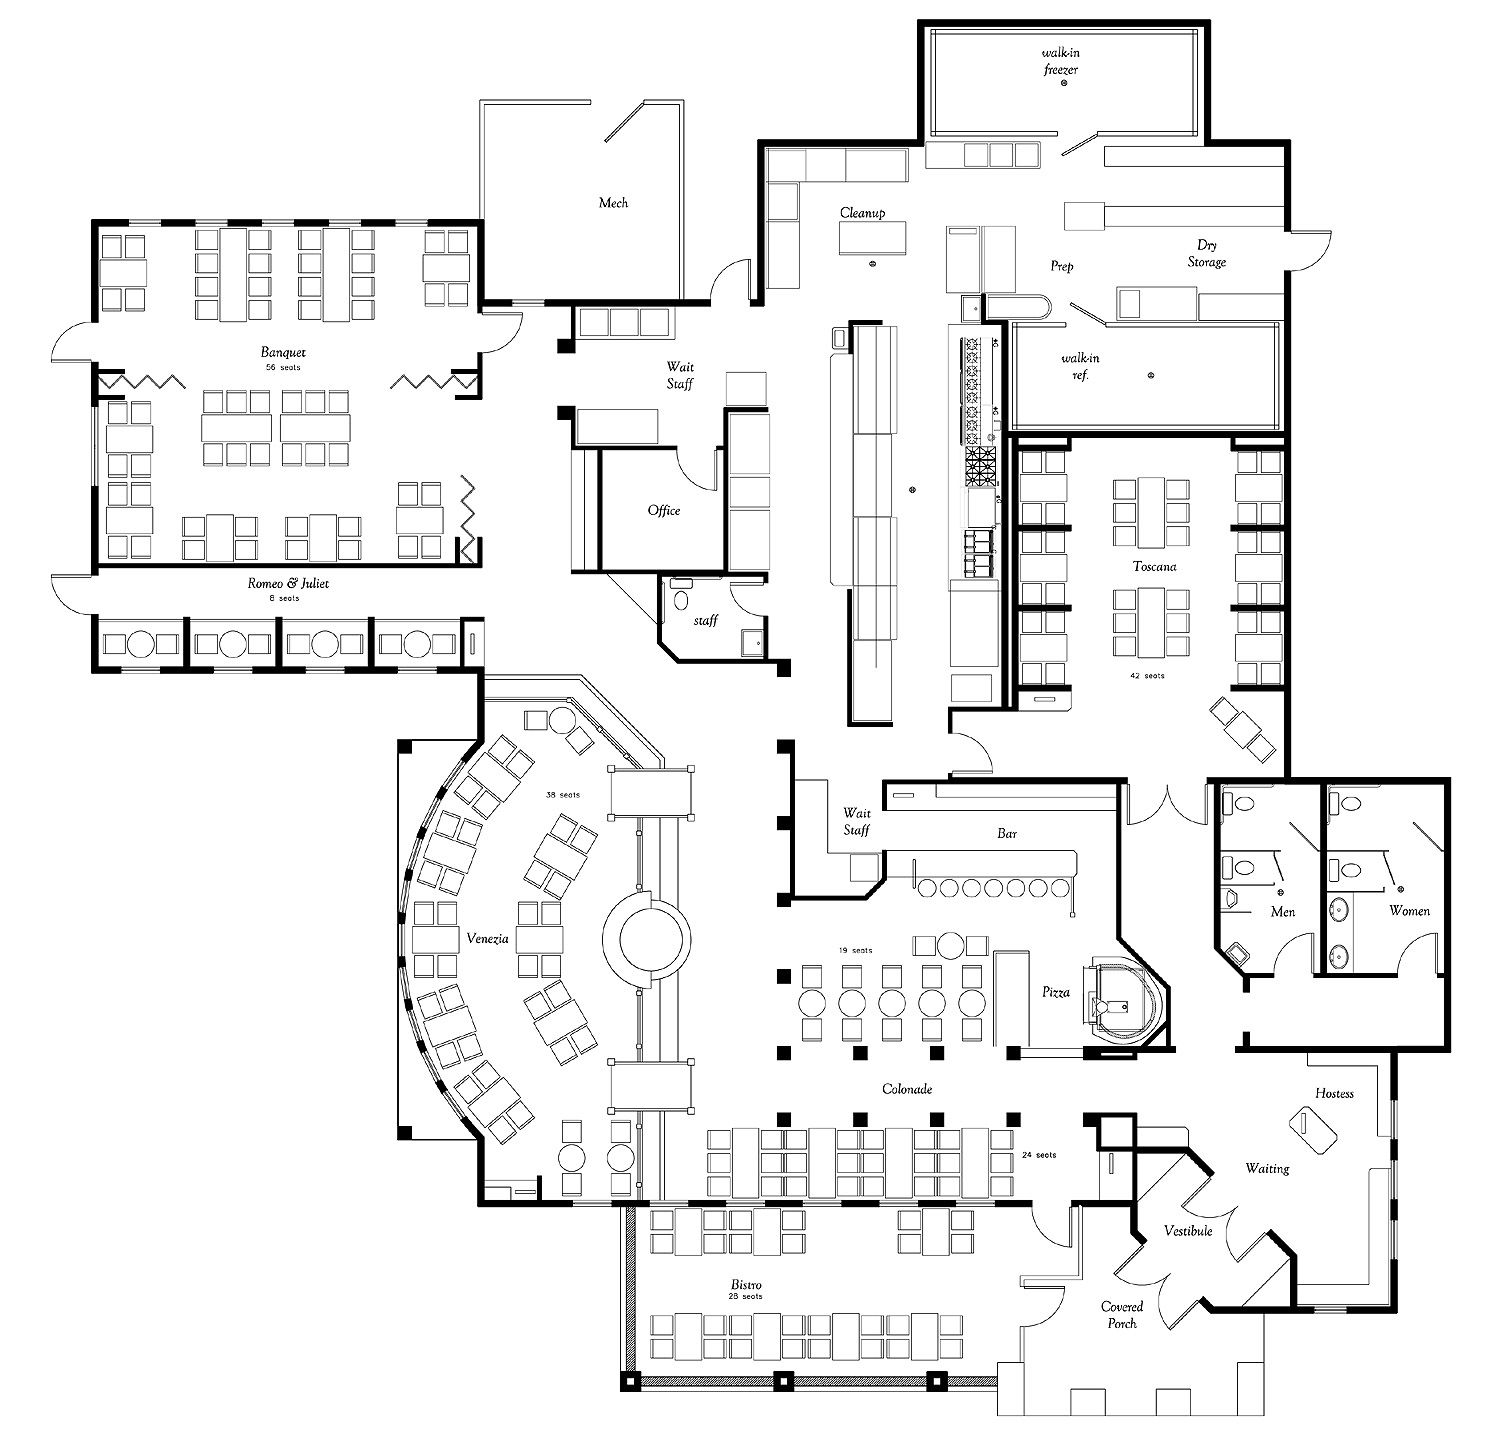 Giovanni italian restaurant floor plan case study for Restaurant planning software